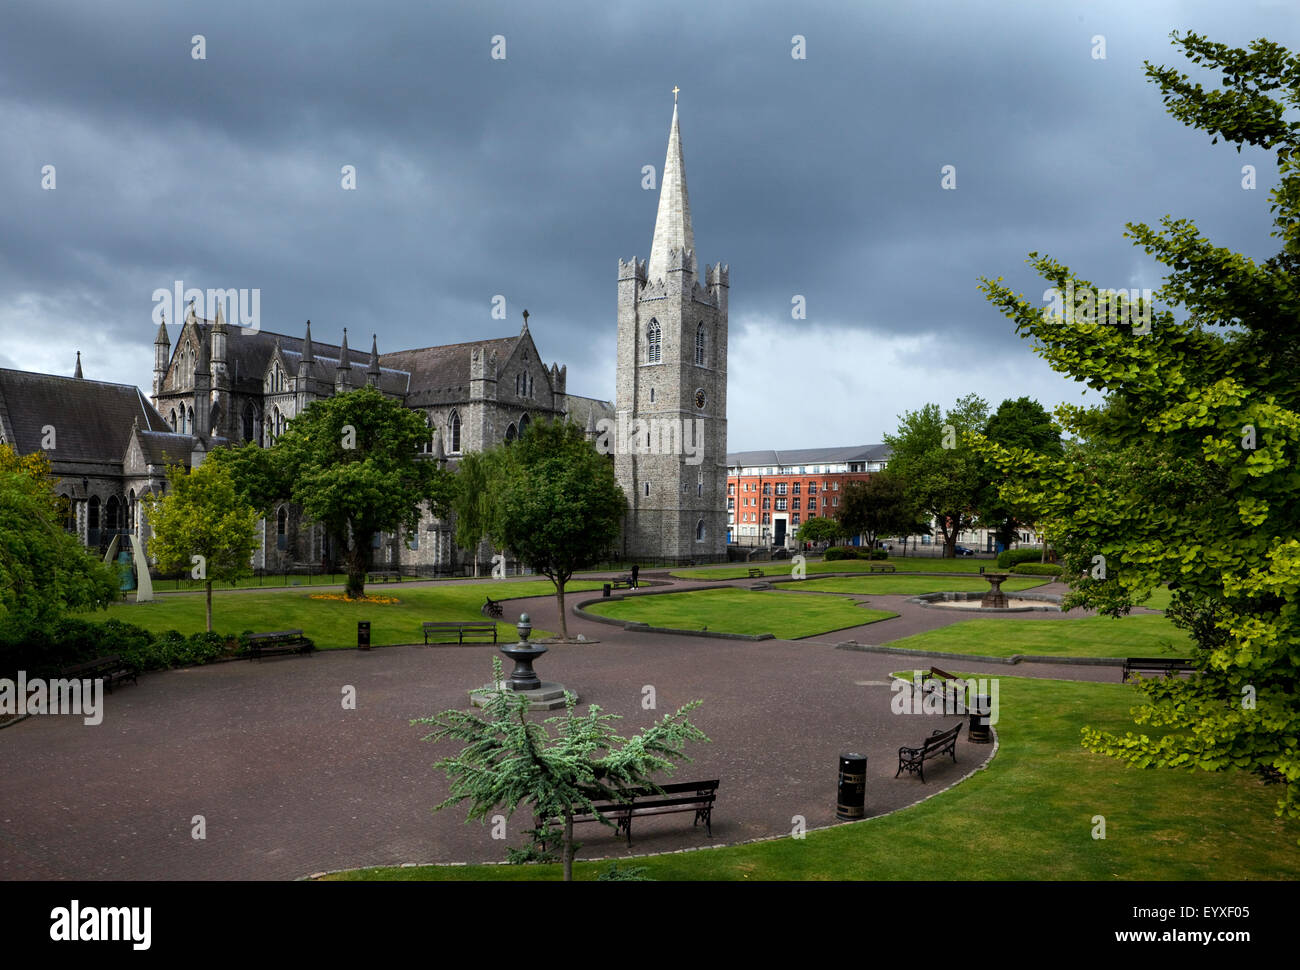 Garden of St Patrick's Cathedral, founded 1191, Dublin City, Ireland Stock Photo